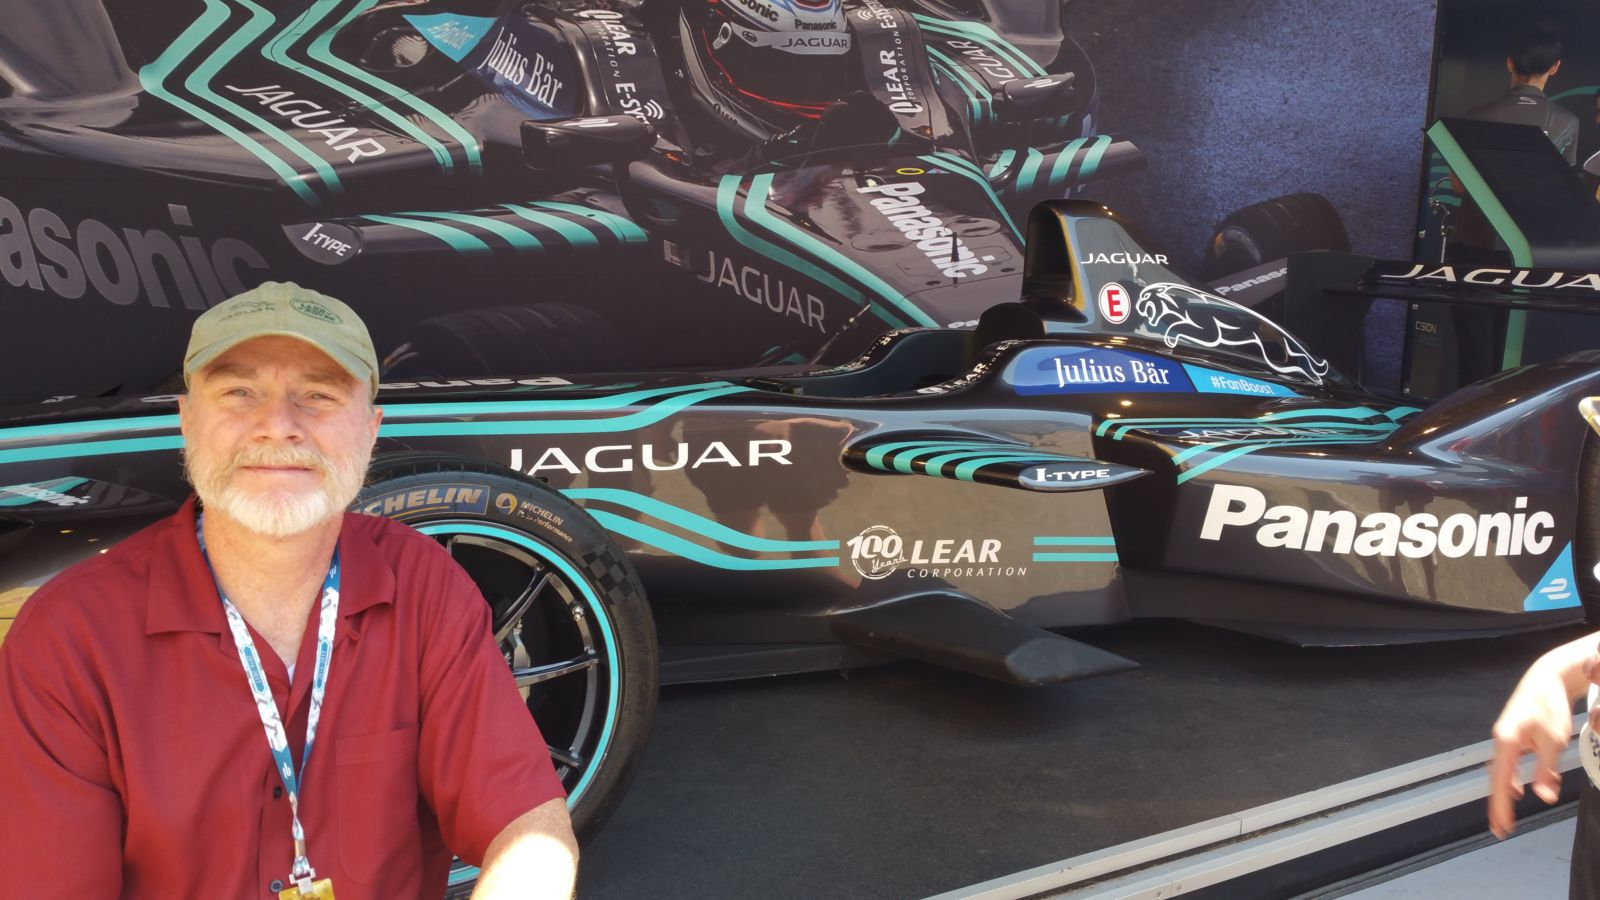 GERRY WITH JAGUAR FORMULA E CAR BROOKLYN NY 07-17 (2)